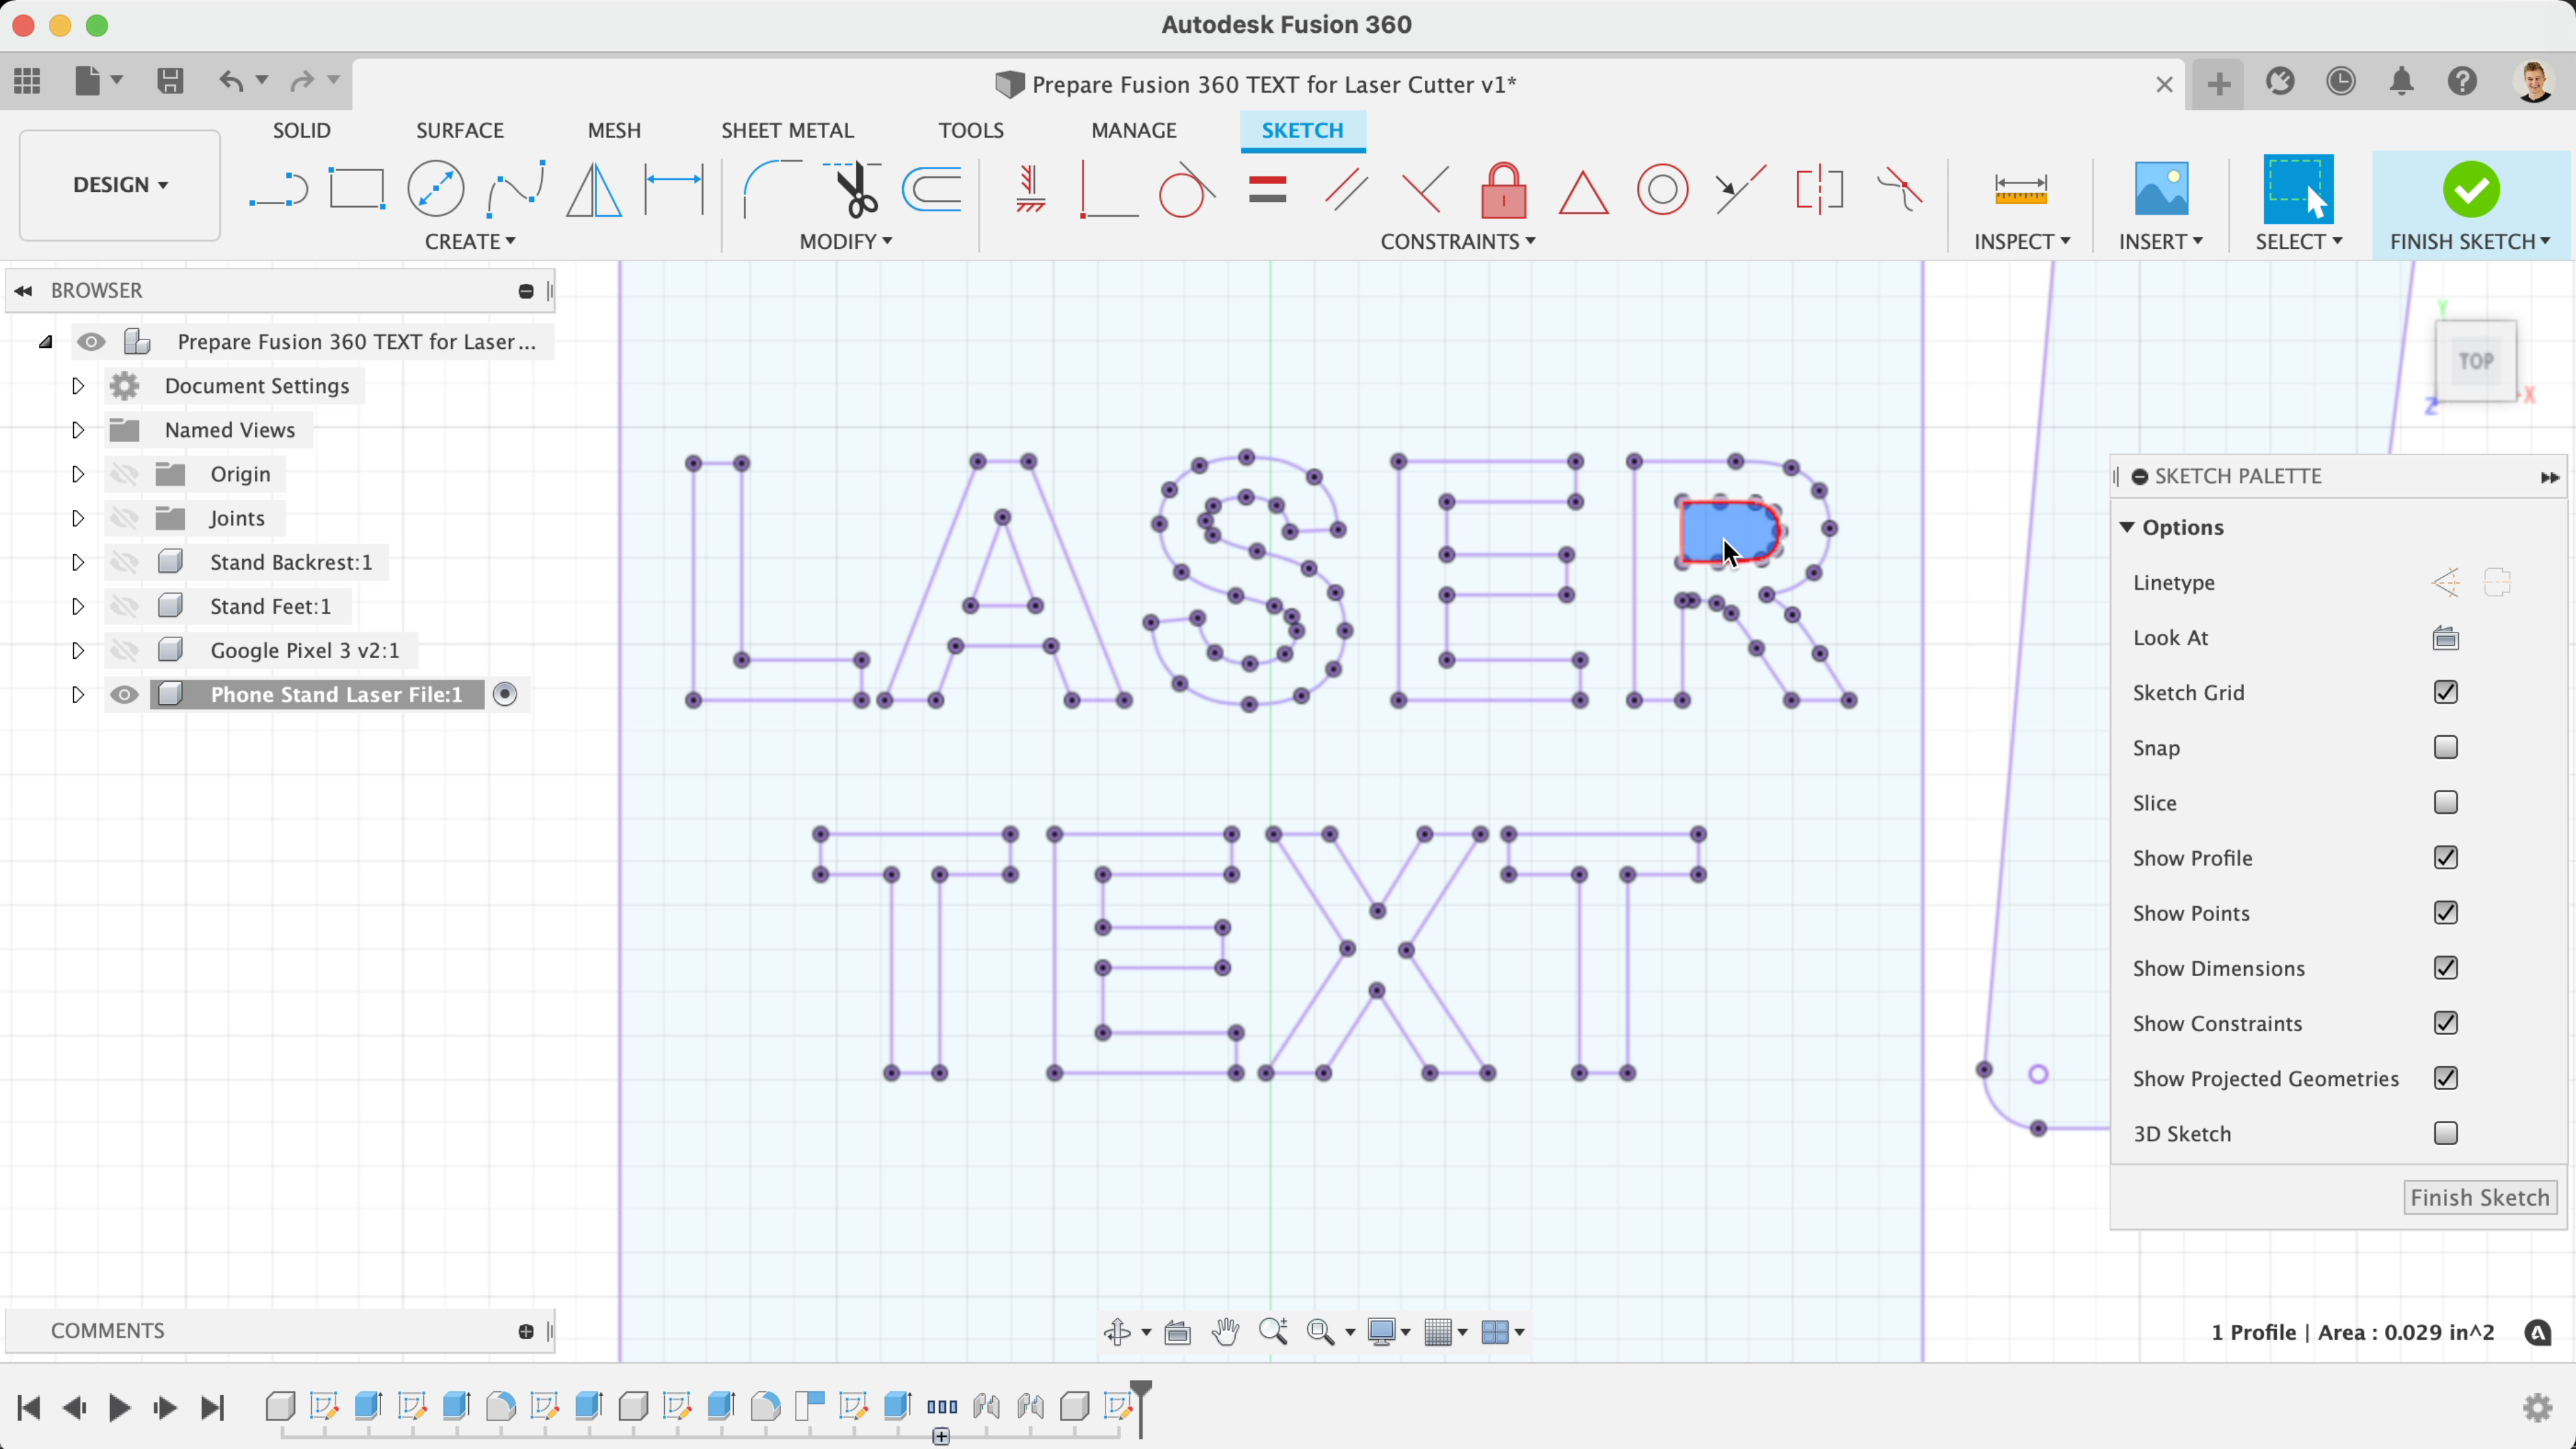 Laser Cut text from Autodesk Fusion 360